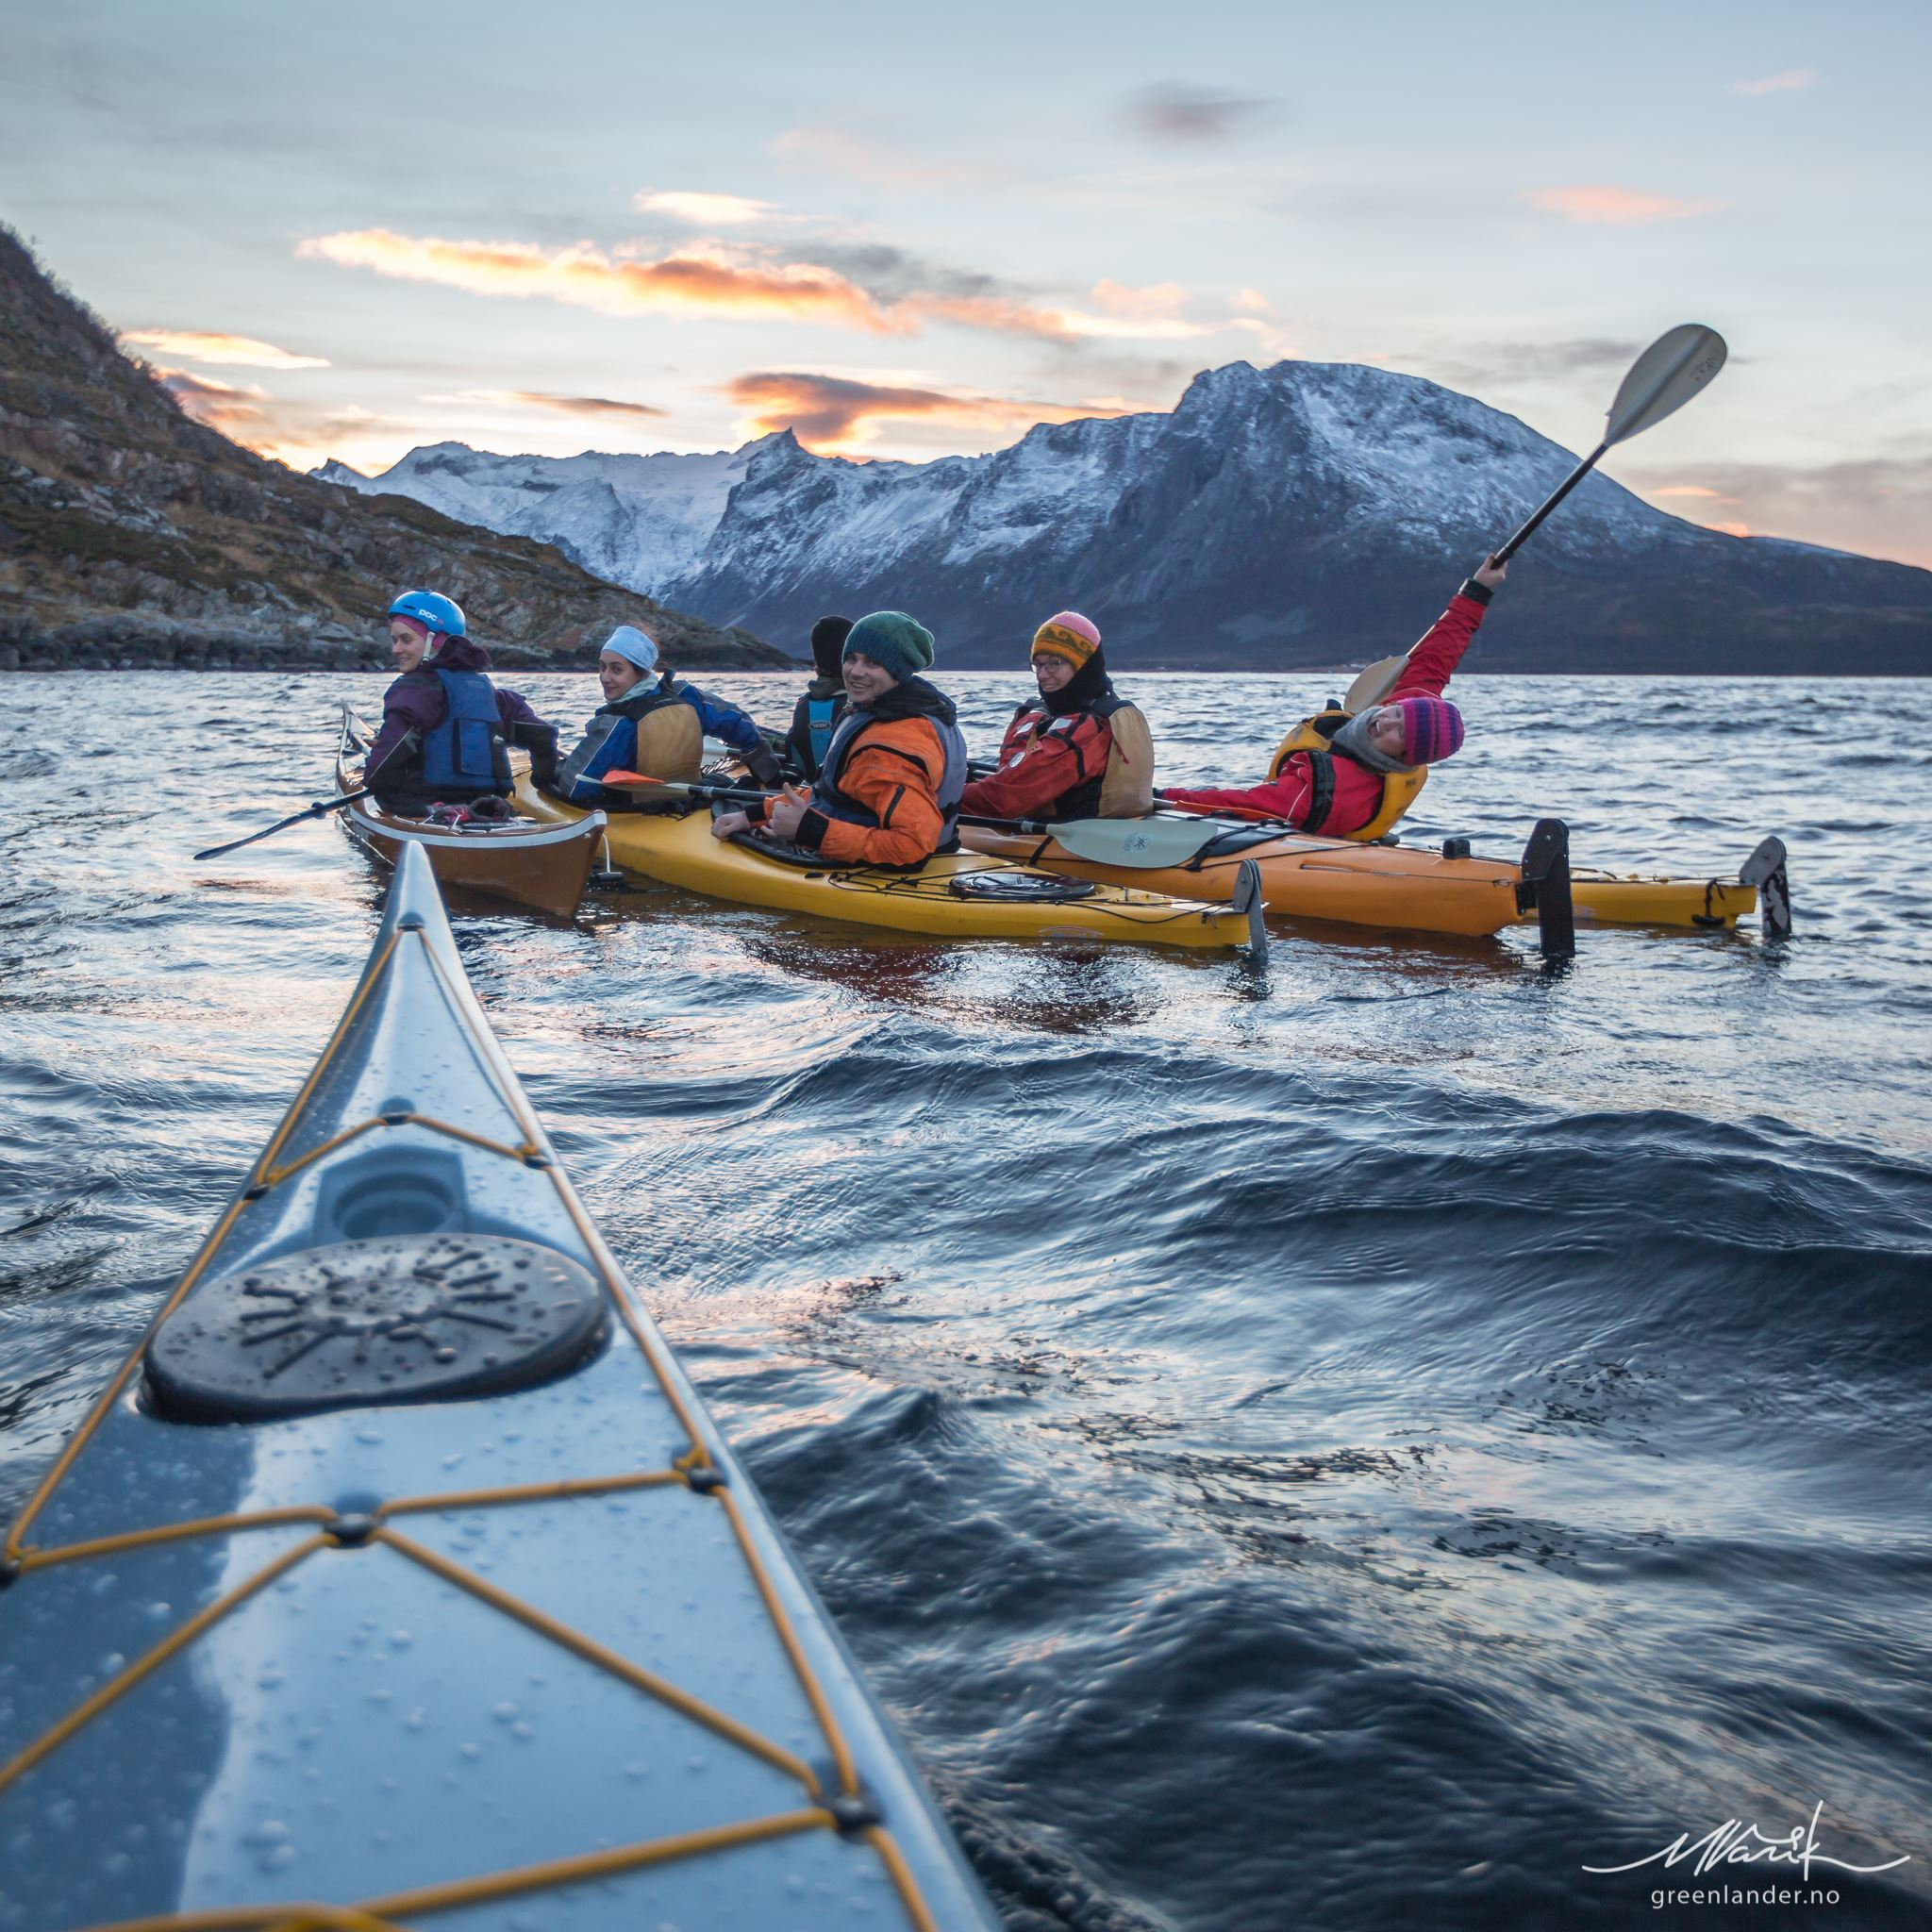 Winter Kayaking with Whales, BCU certified guides and stable tandem kayaks - Greenlander